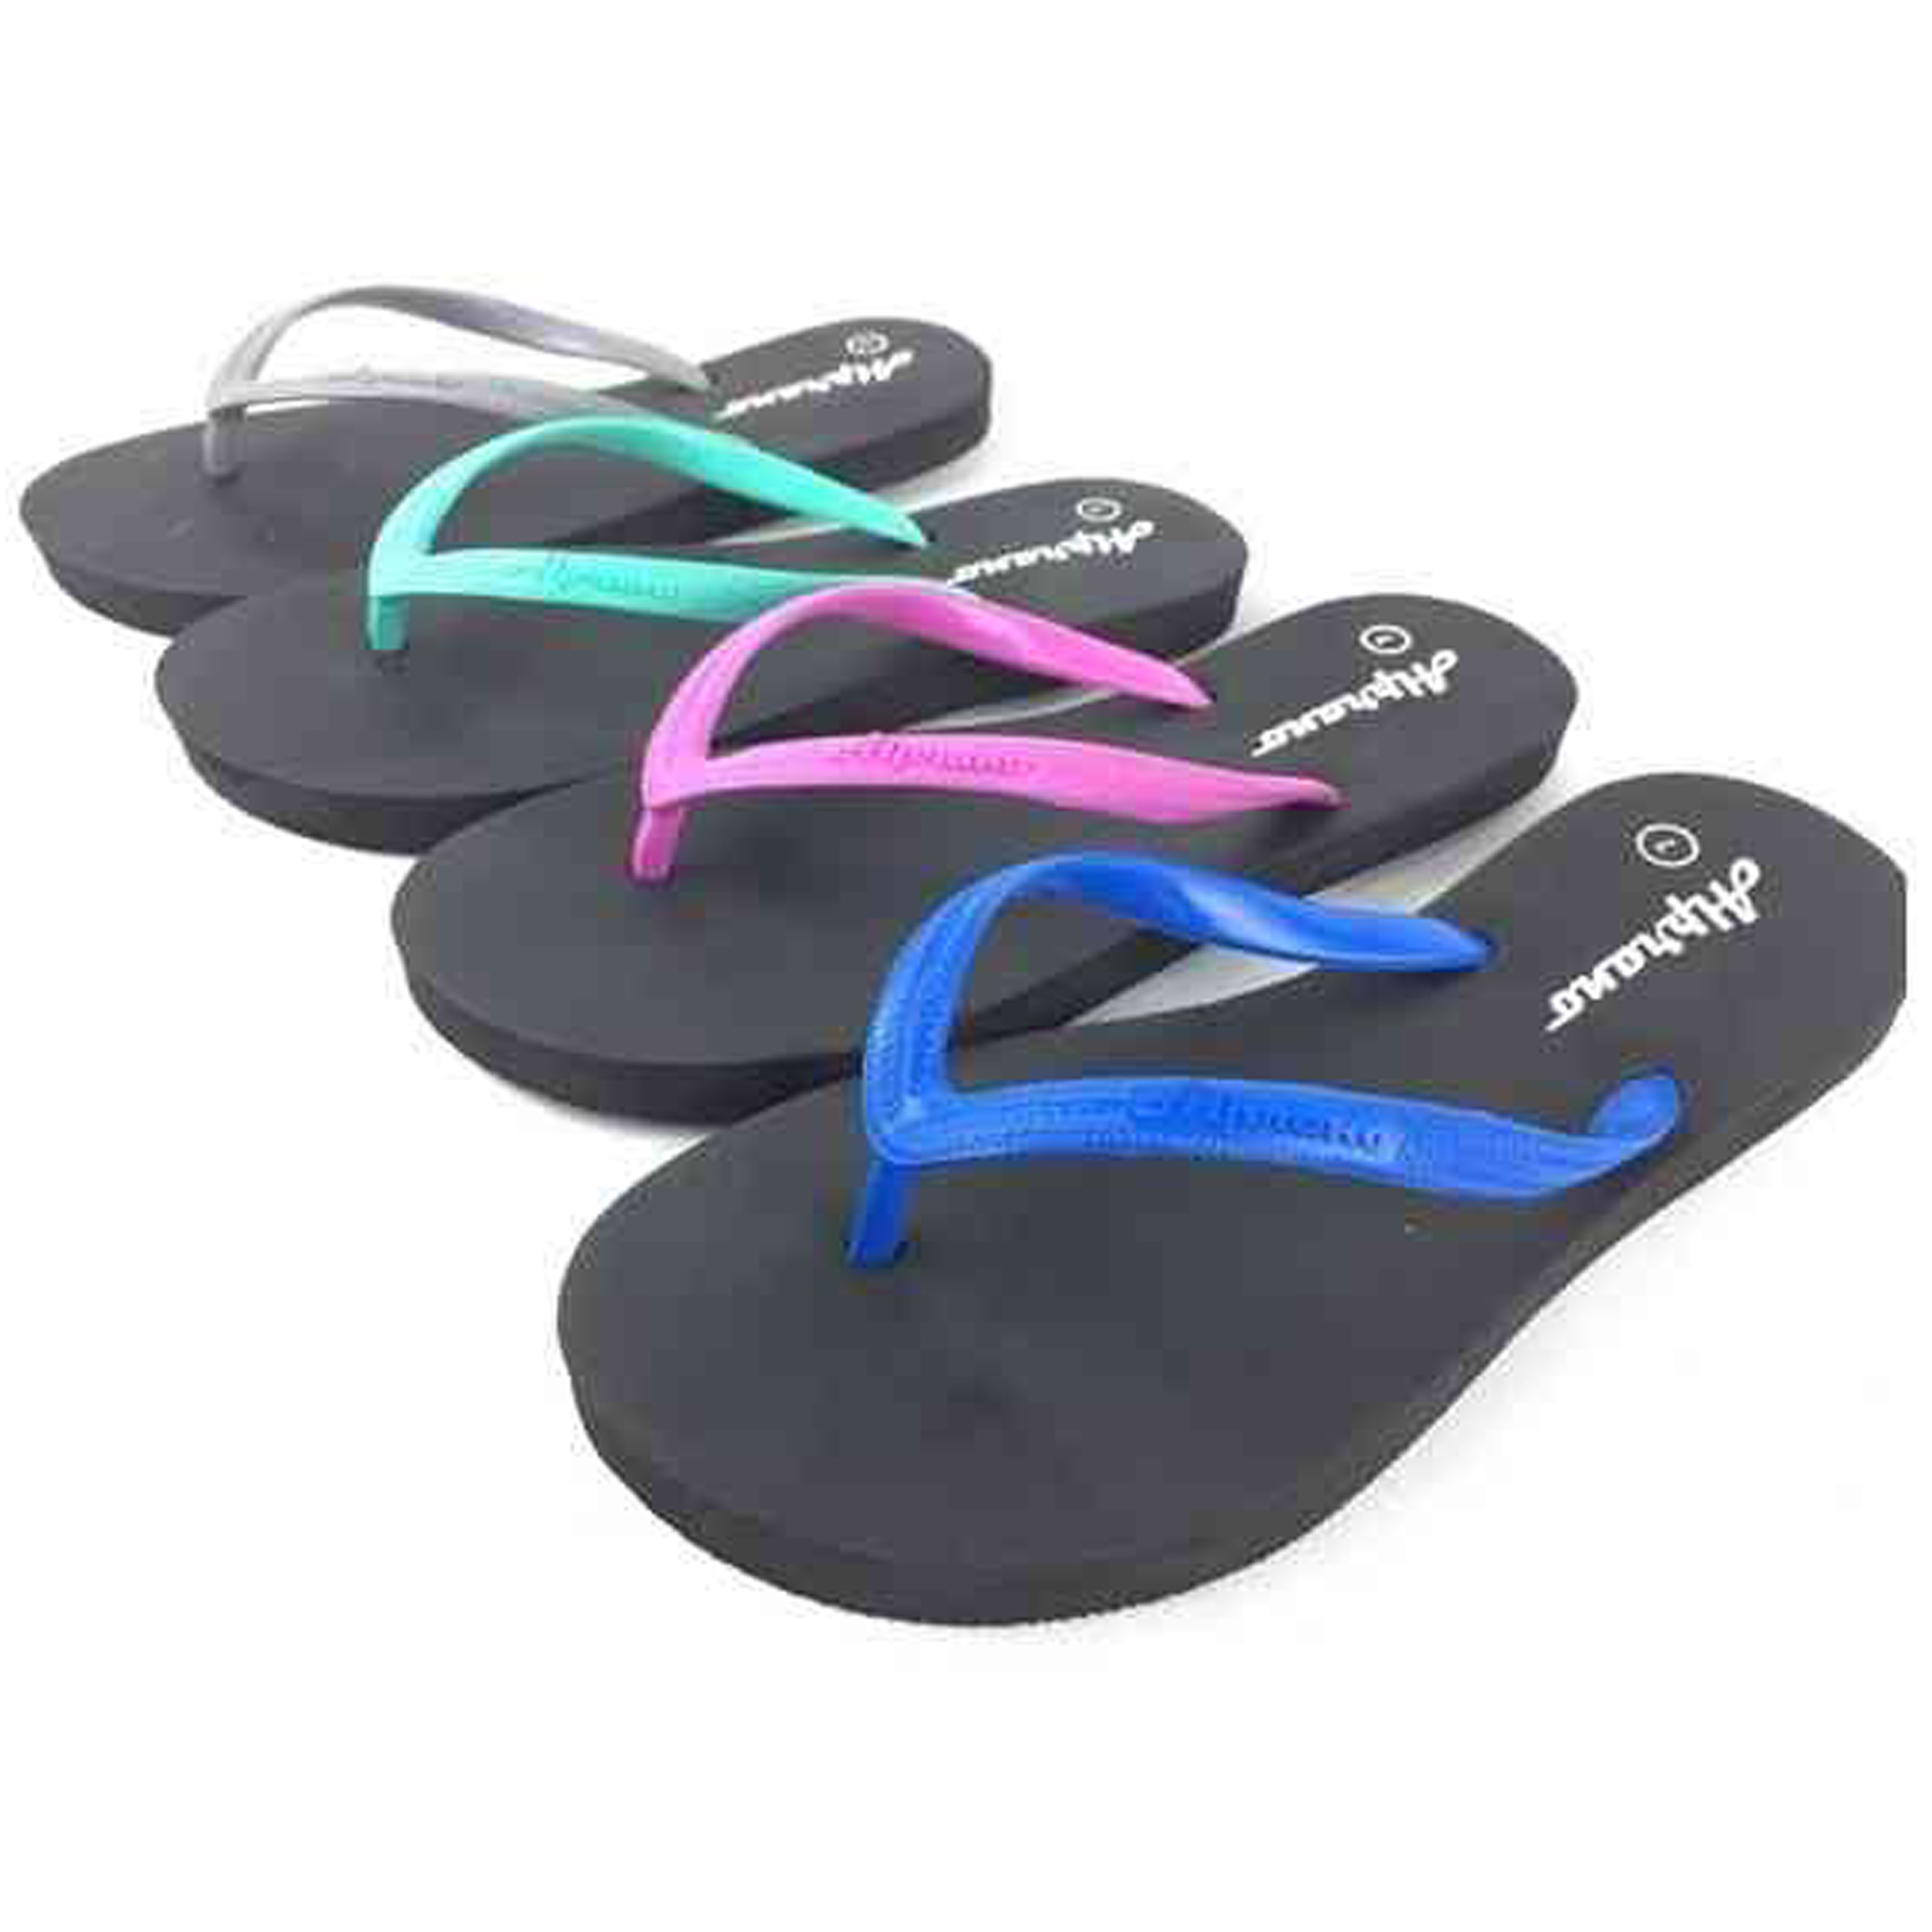 JN-APL 07 (UK6) Alprano Slipper